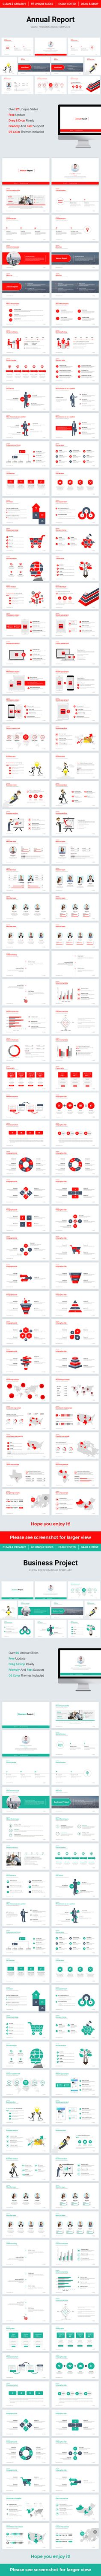 62 best presentaciones images on Pinterest in 2018 | Page layout ...